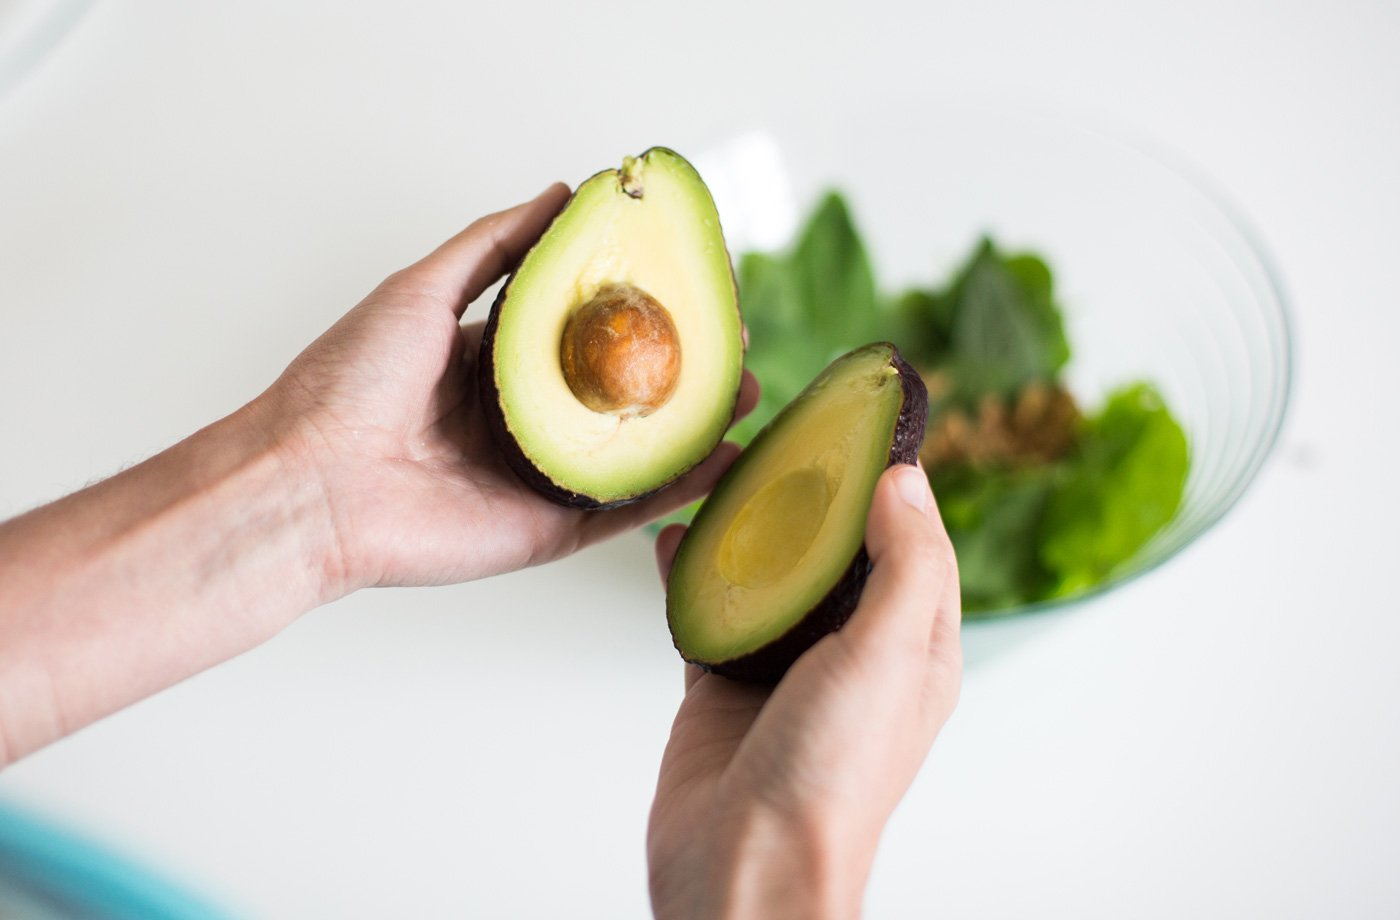 I'm a Chef, and This Is How To Pick a Perfectly Ripe Avocado Depending on When You'll Use It